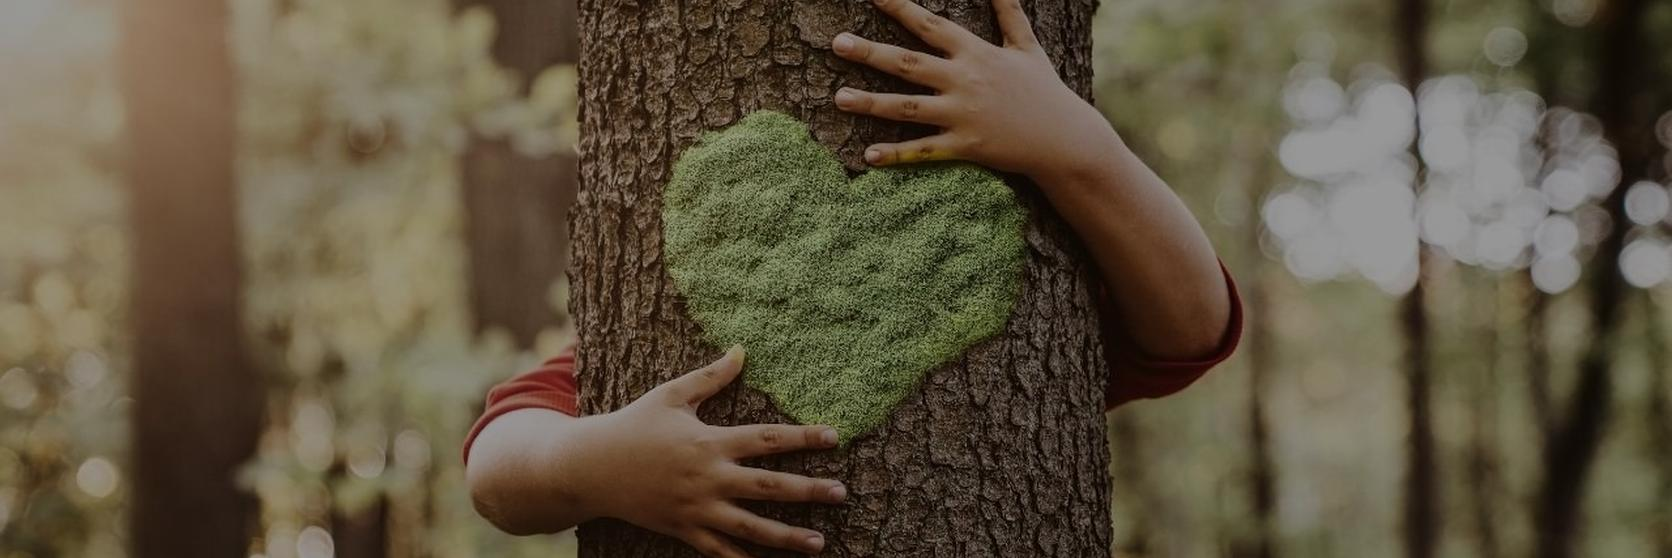 earth-day-ways-to-help-planet